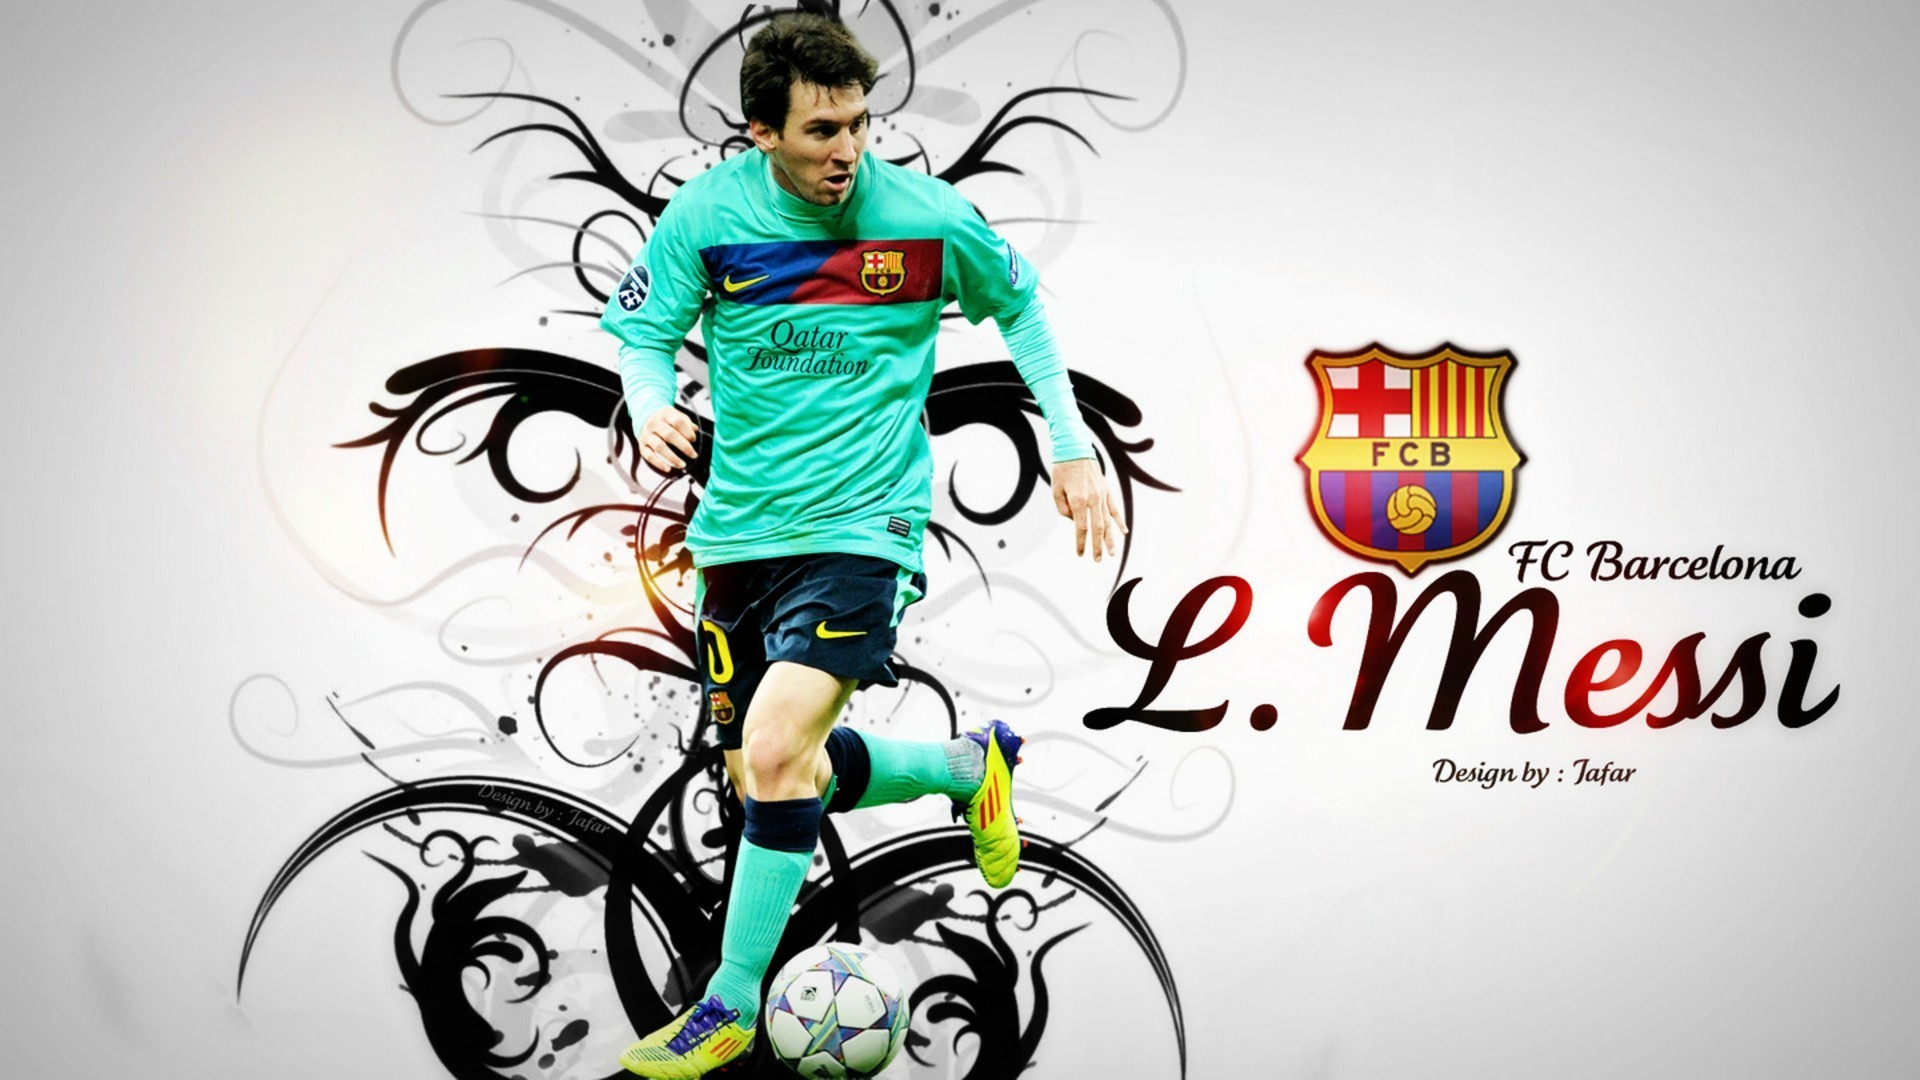 Lionel Messi HD Wallpaper   Wallpaper High Definition High Quality 1920x1080